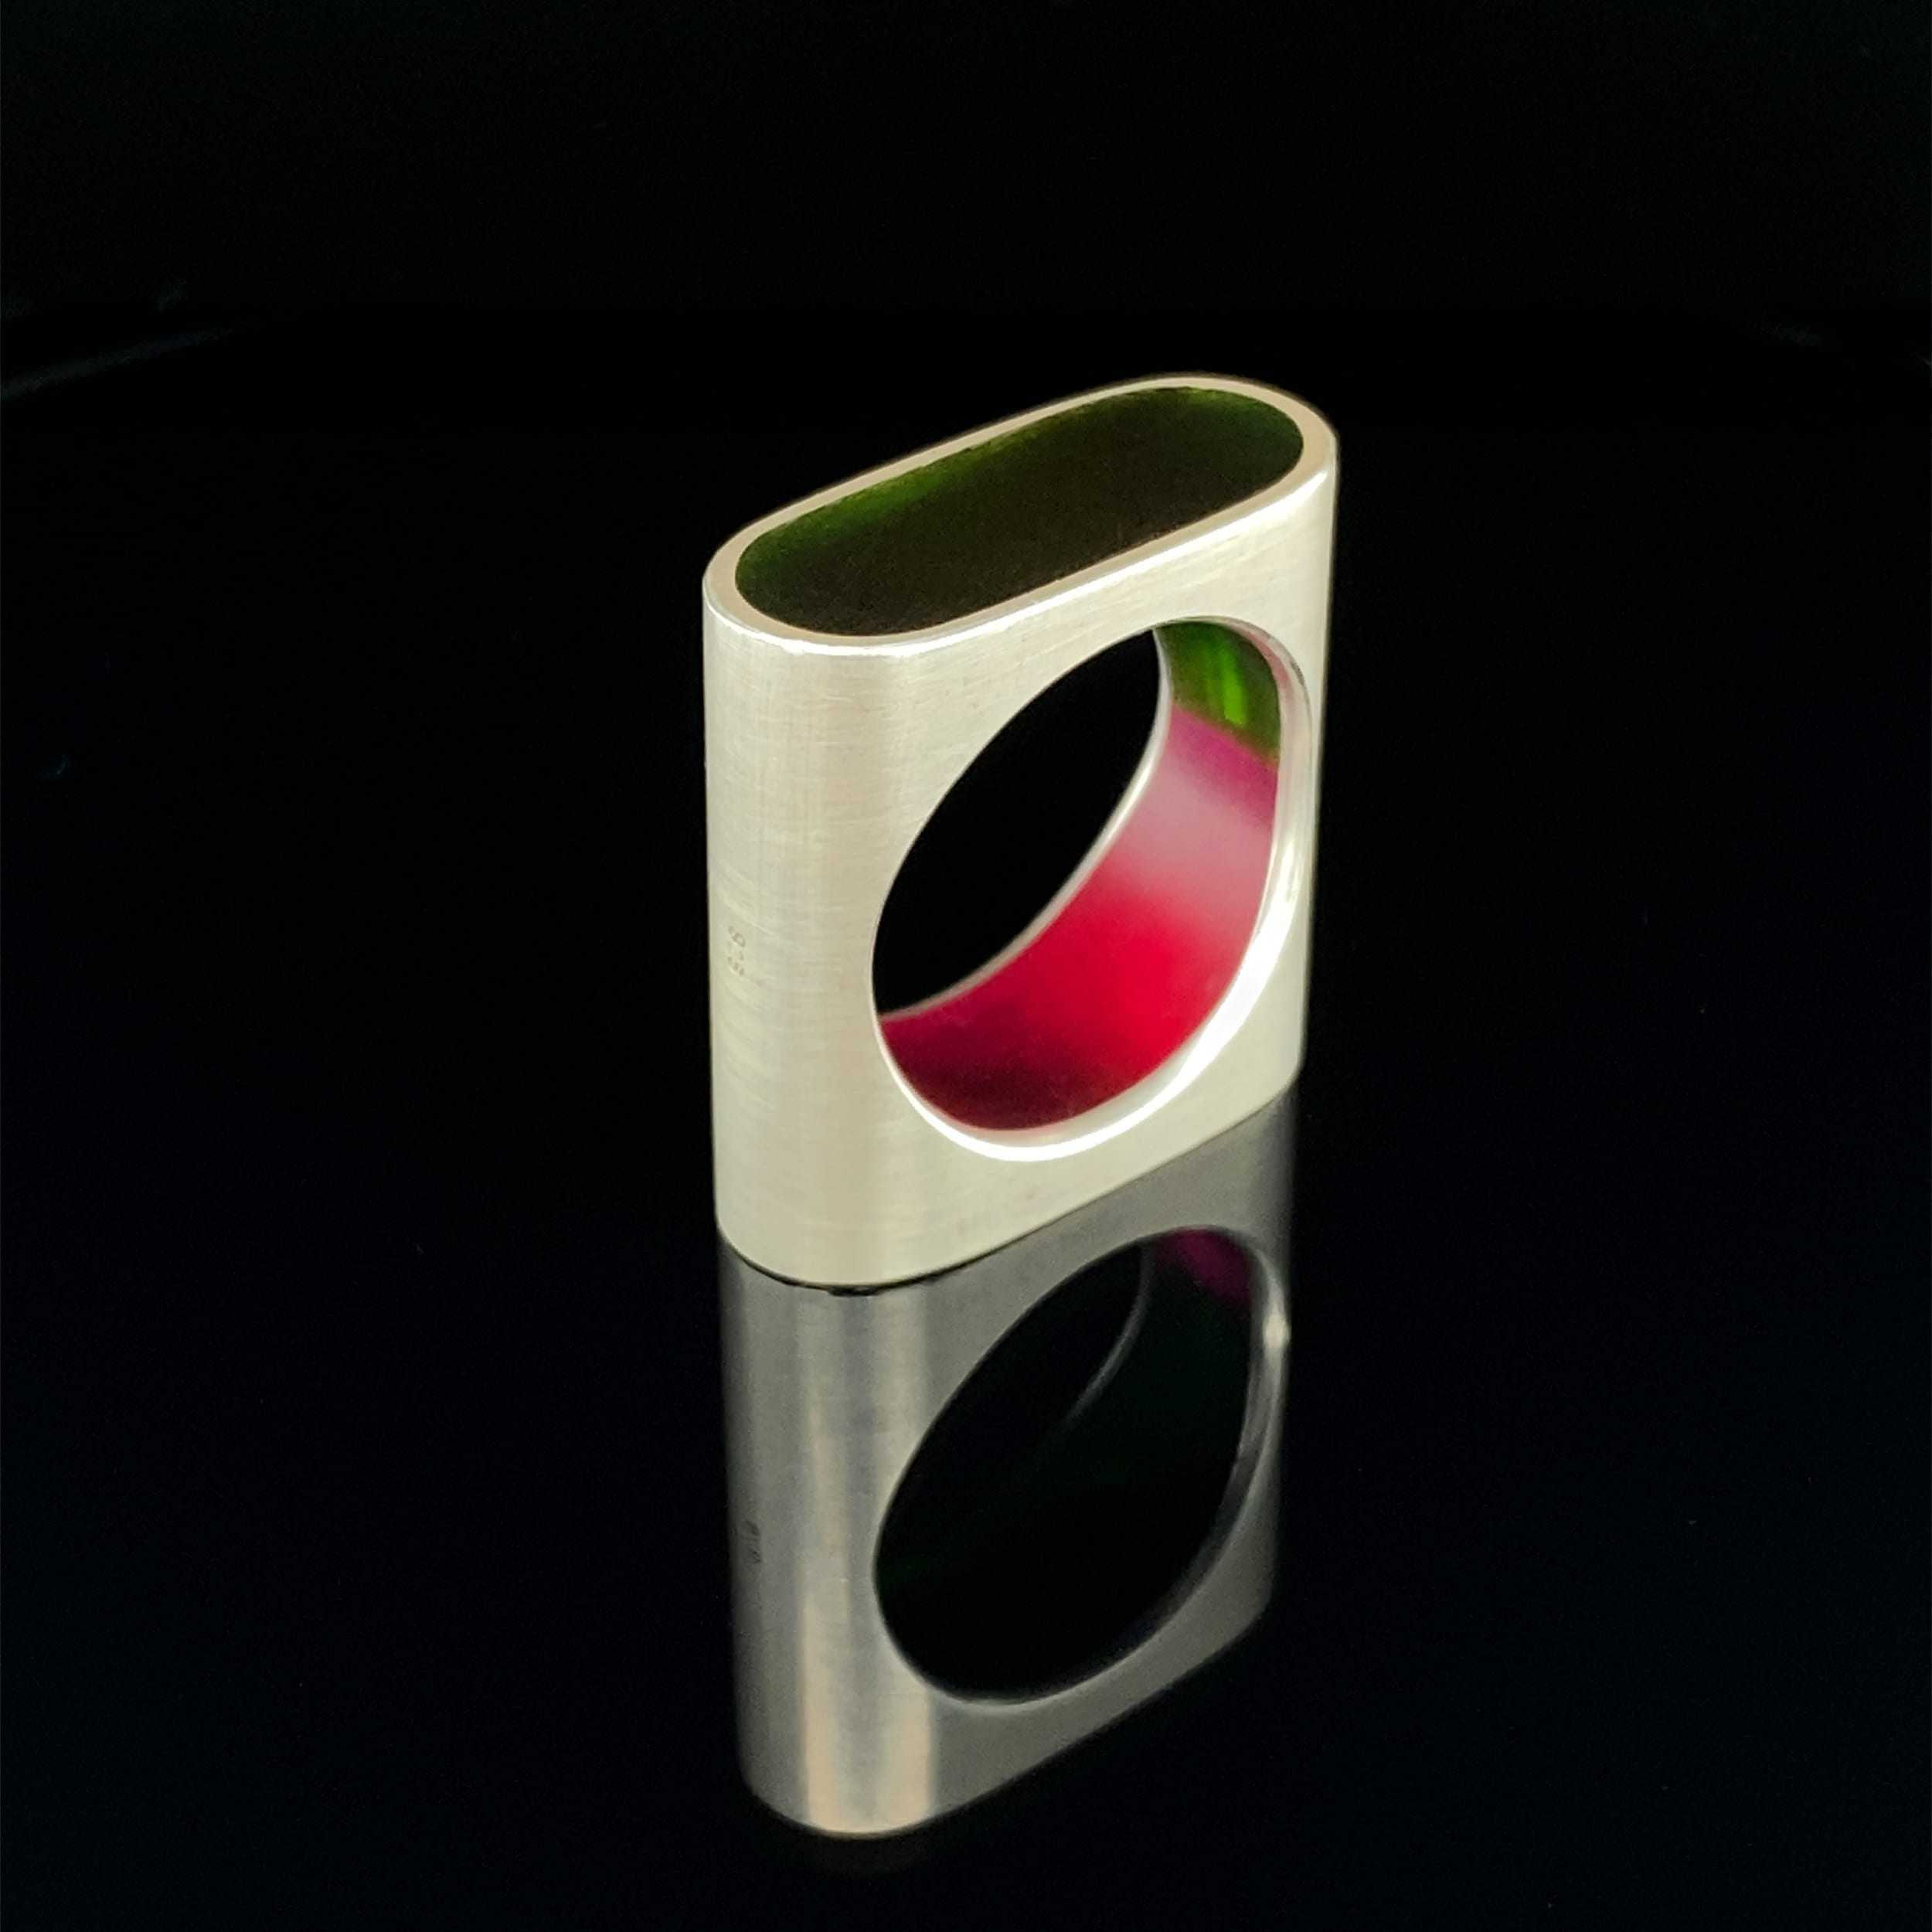 monika jakubec silver resin capsule ring pink green designyard contemporary jewellery gallery dublin ireland